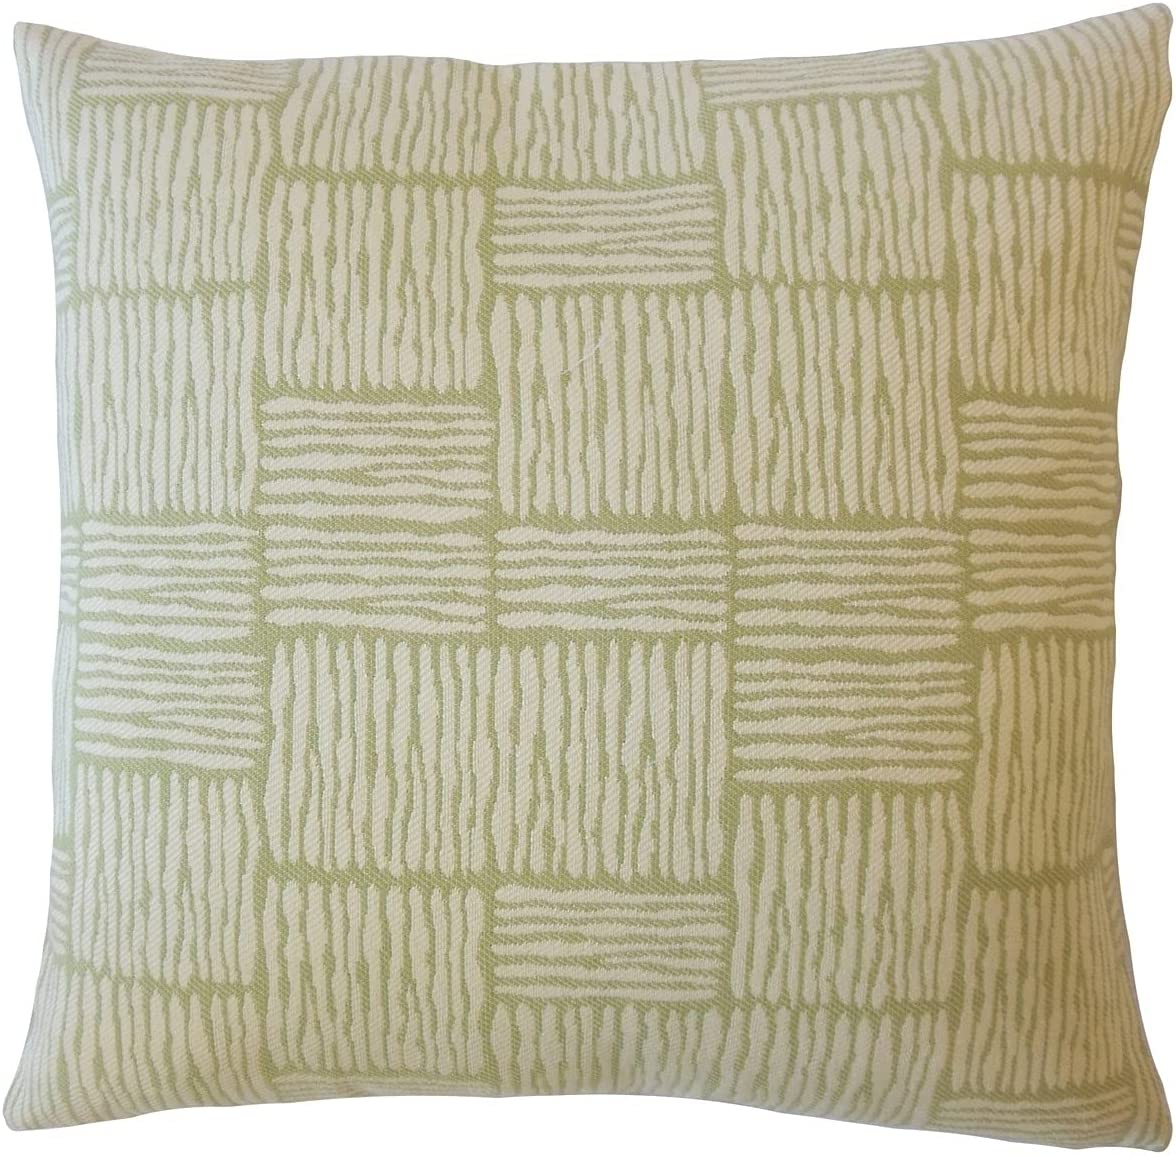 The Pillow Collection All items free shipping Perrin Fashionable Striped Down Throw in Filled